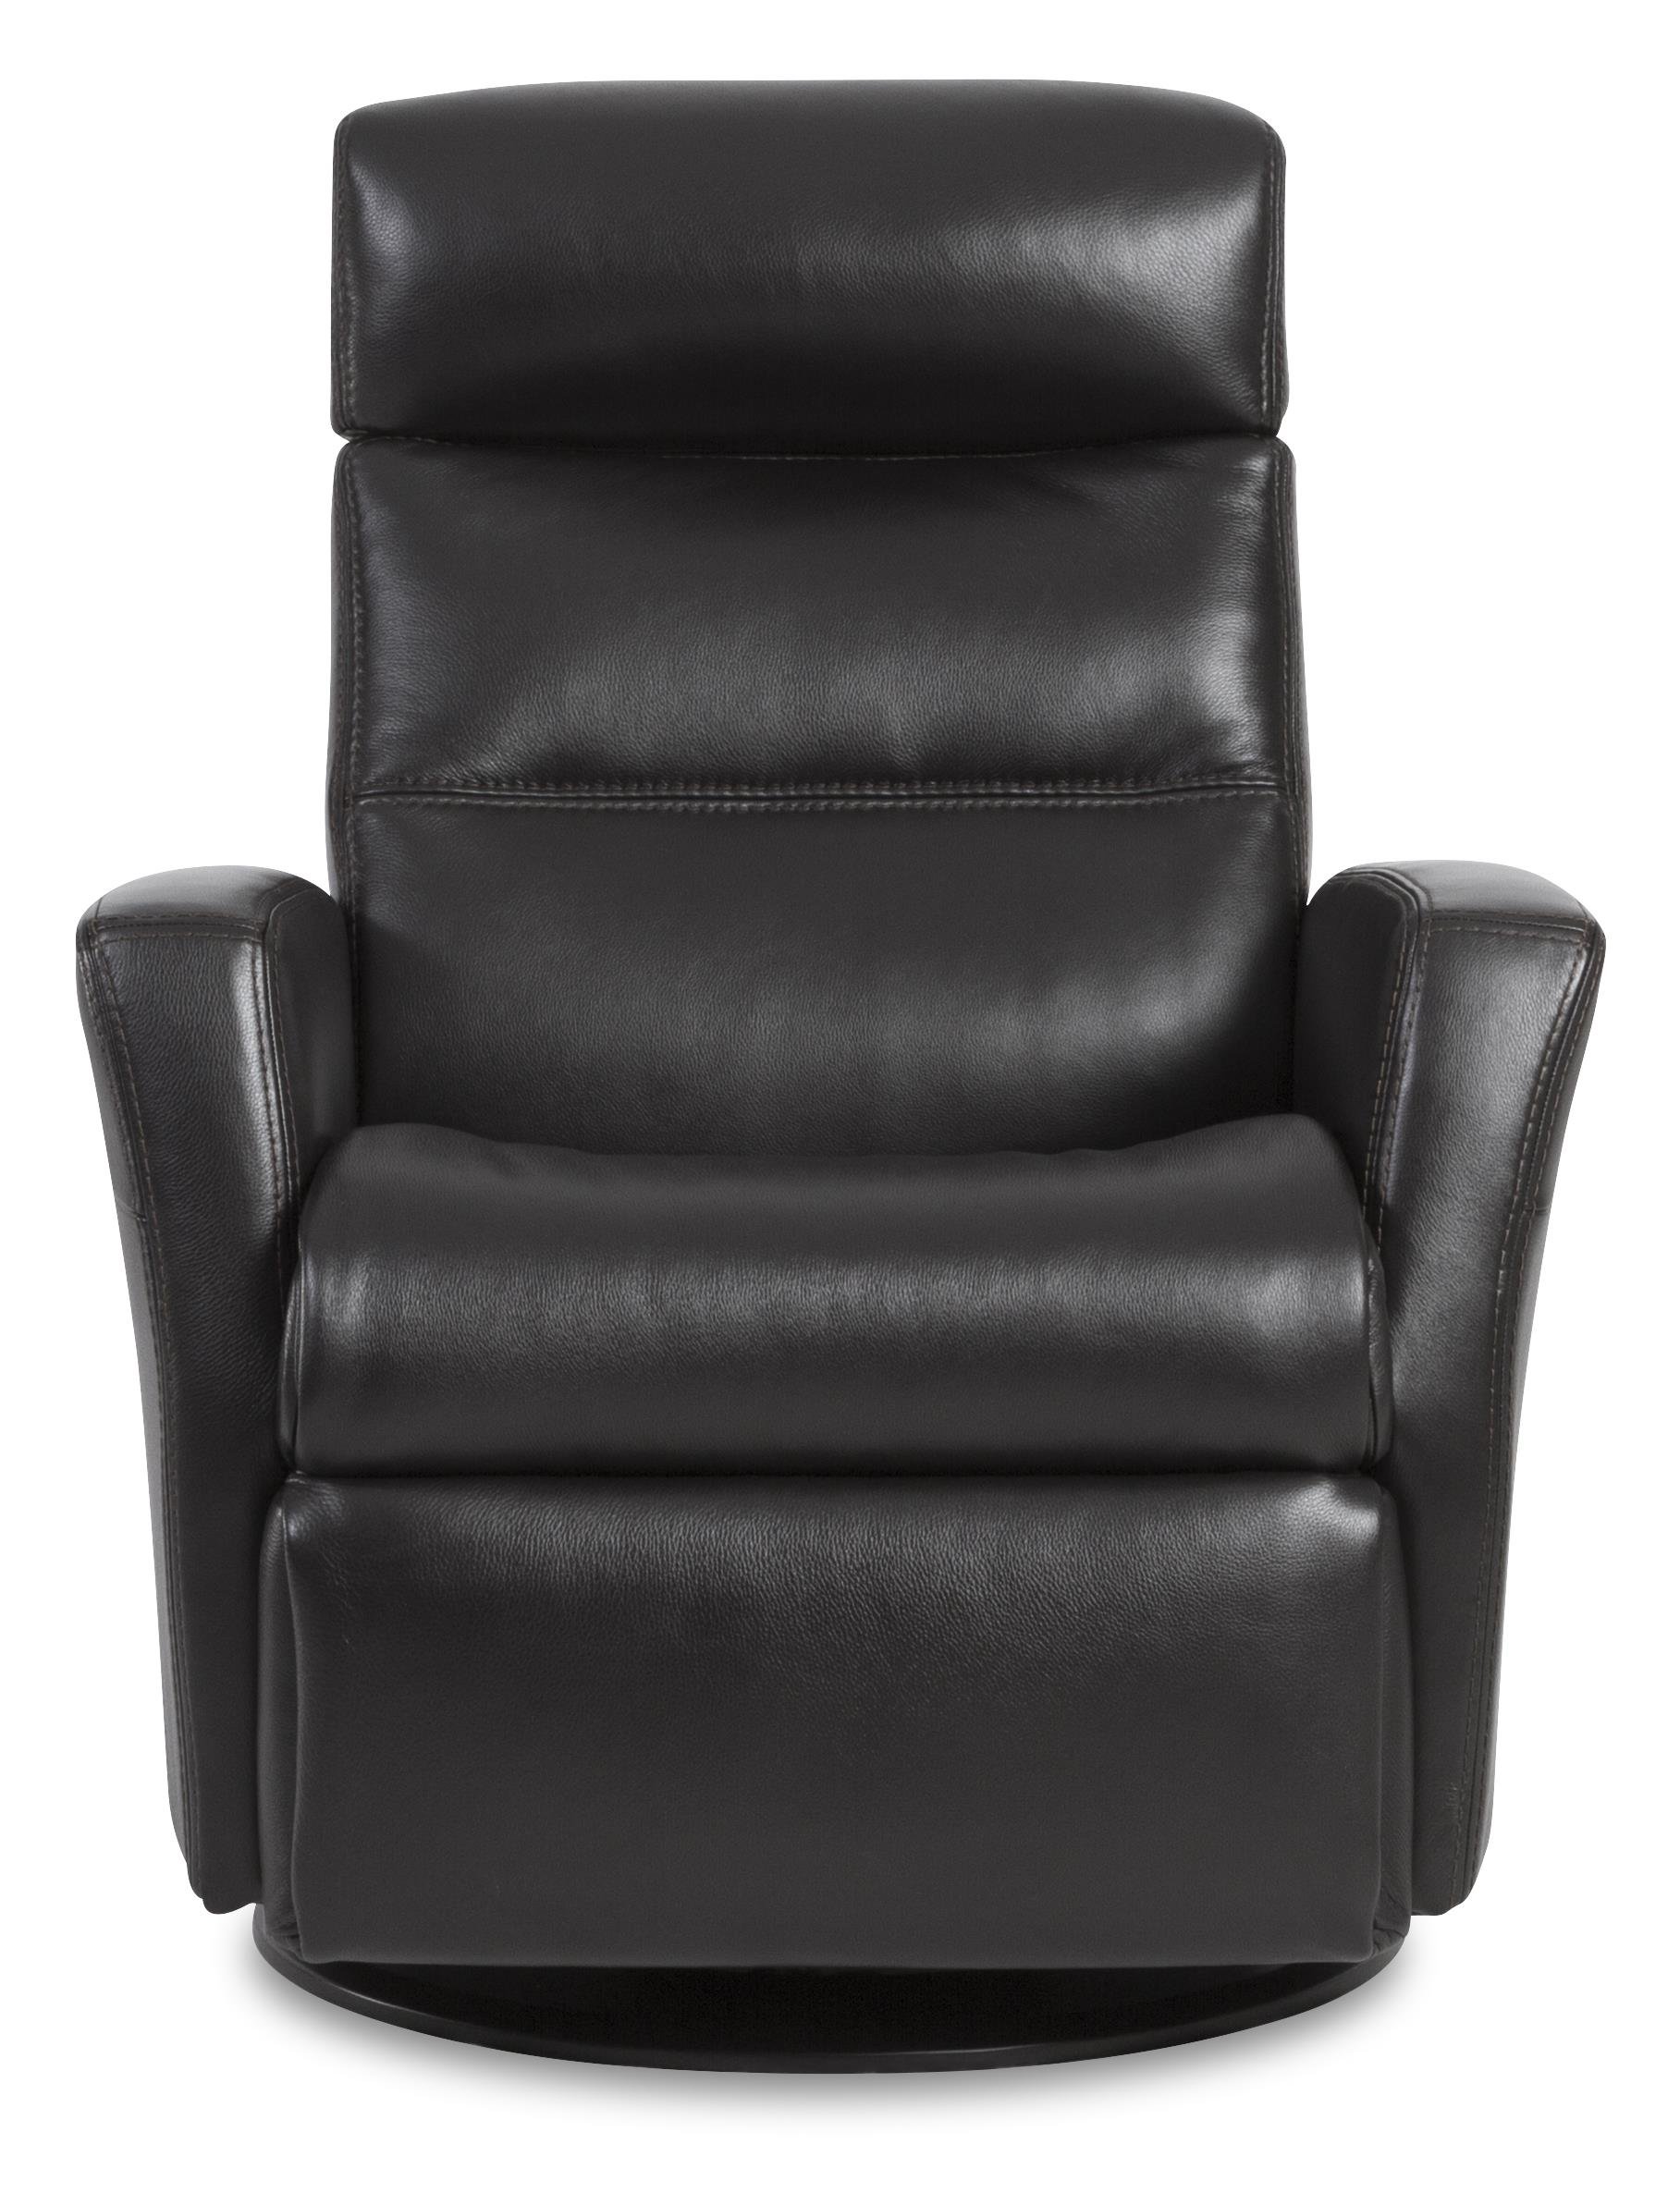 Divani  Compact Recliner with Swivel, Glide and Rock by IMG Norway at Jordan's Home Furnishings